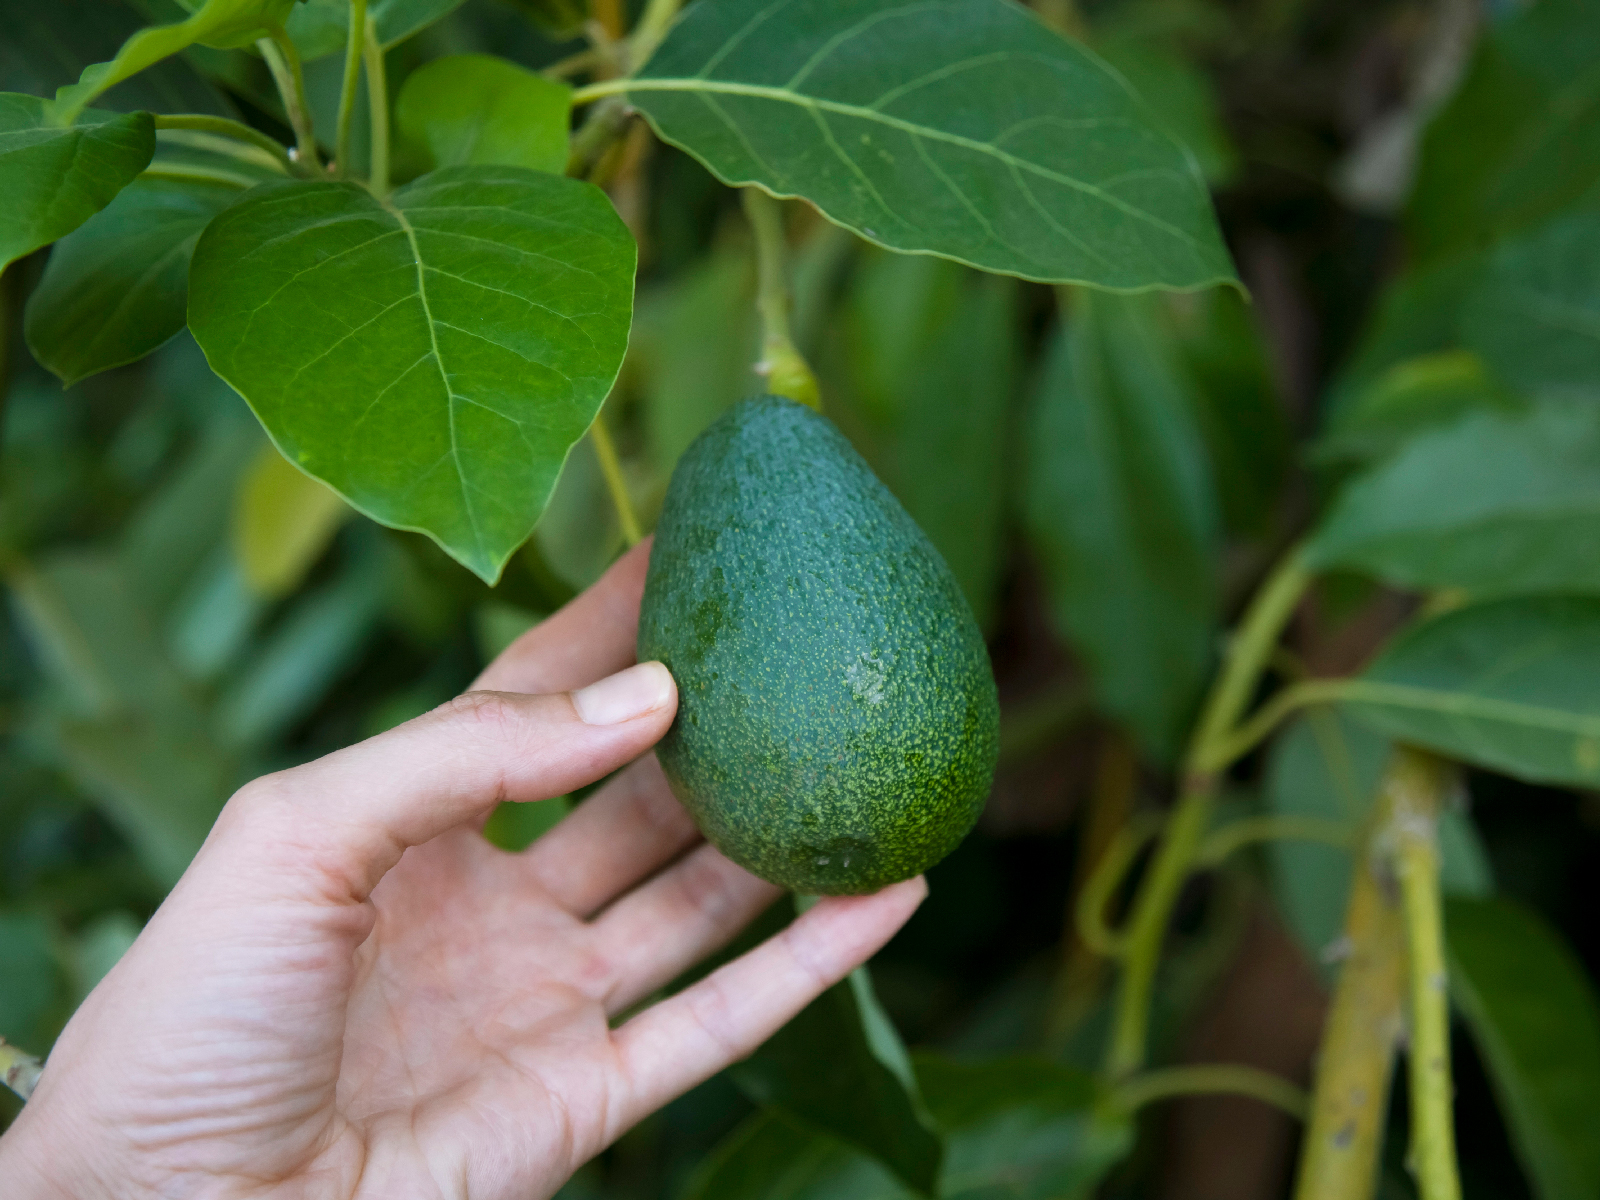 This Avocado Oil Company Is Giving Away an Entire Avocado Grove